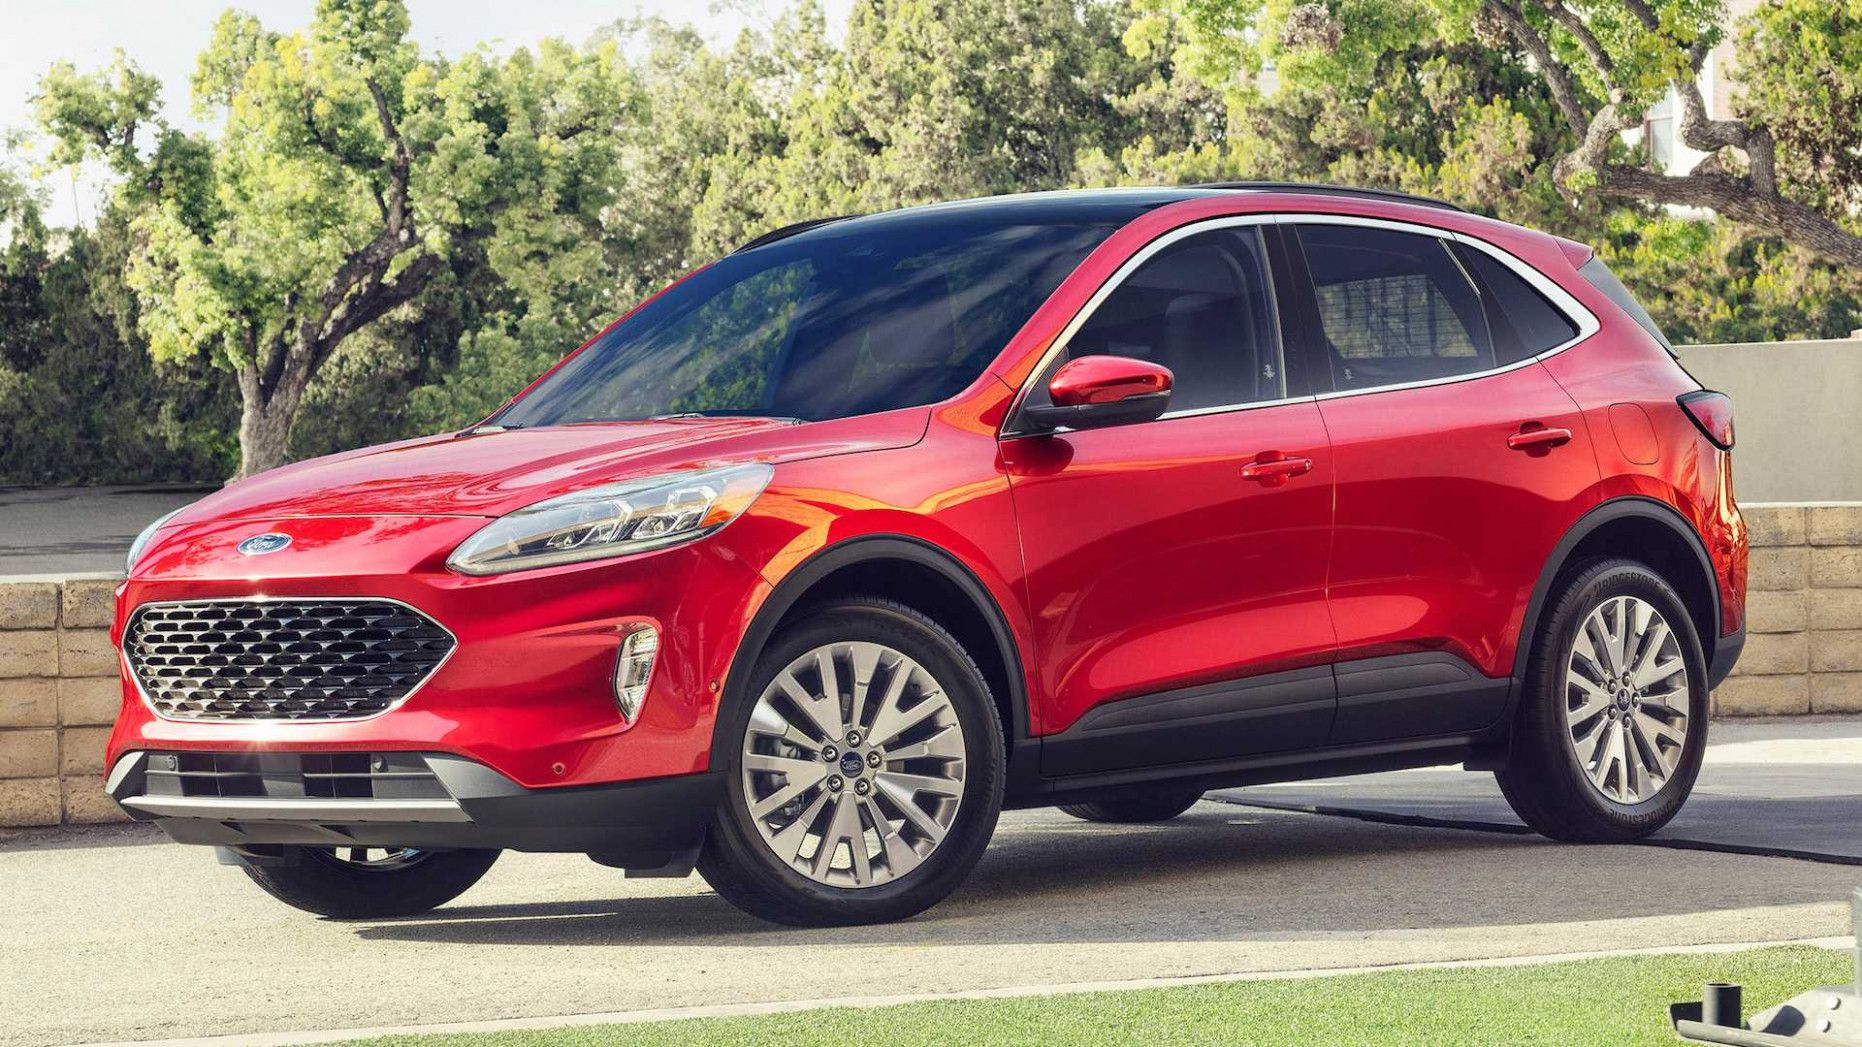 Pin By Animallover On Classy Cars In 2020 With Images Ford Escape Ford News Classy Cars